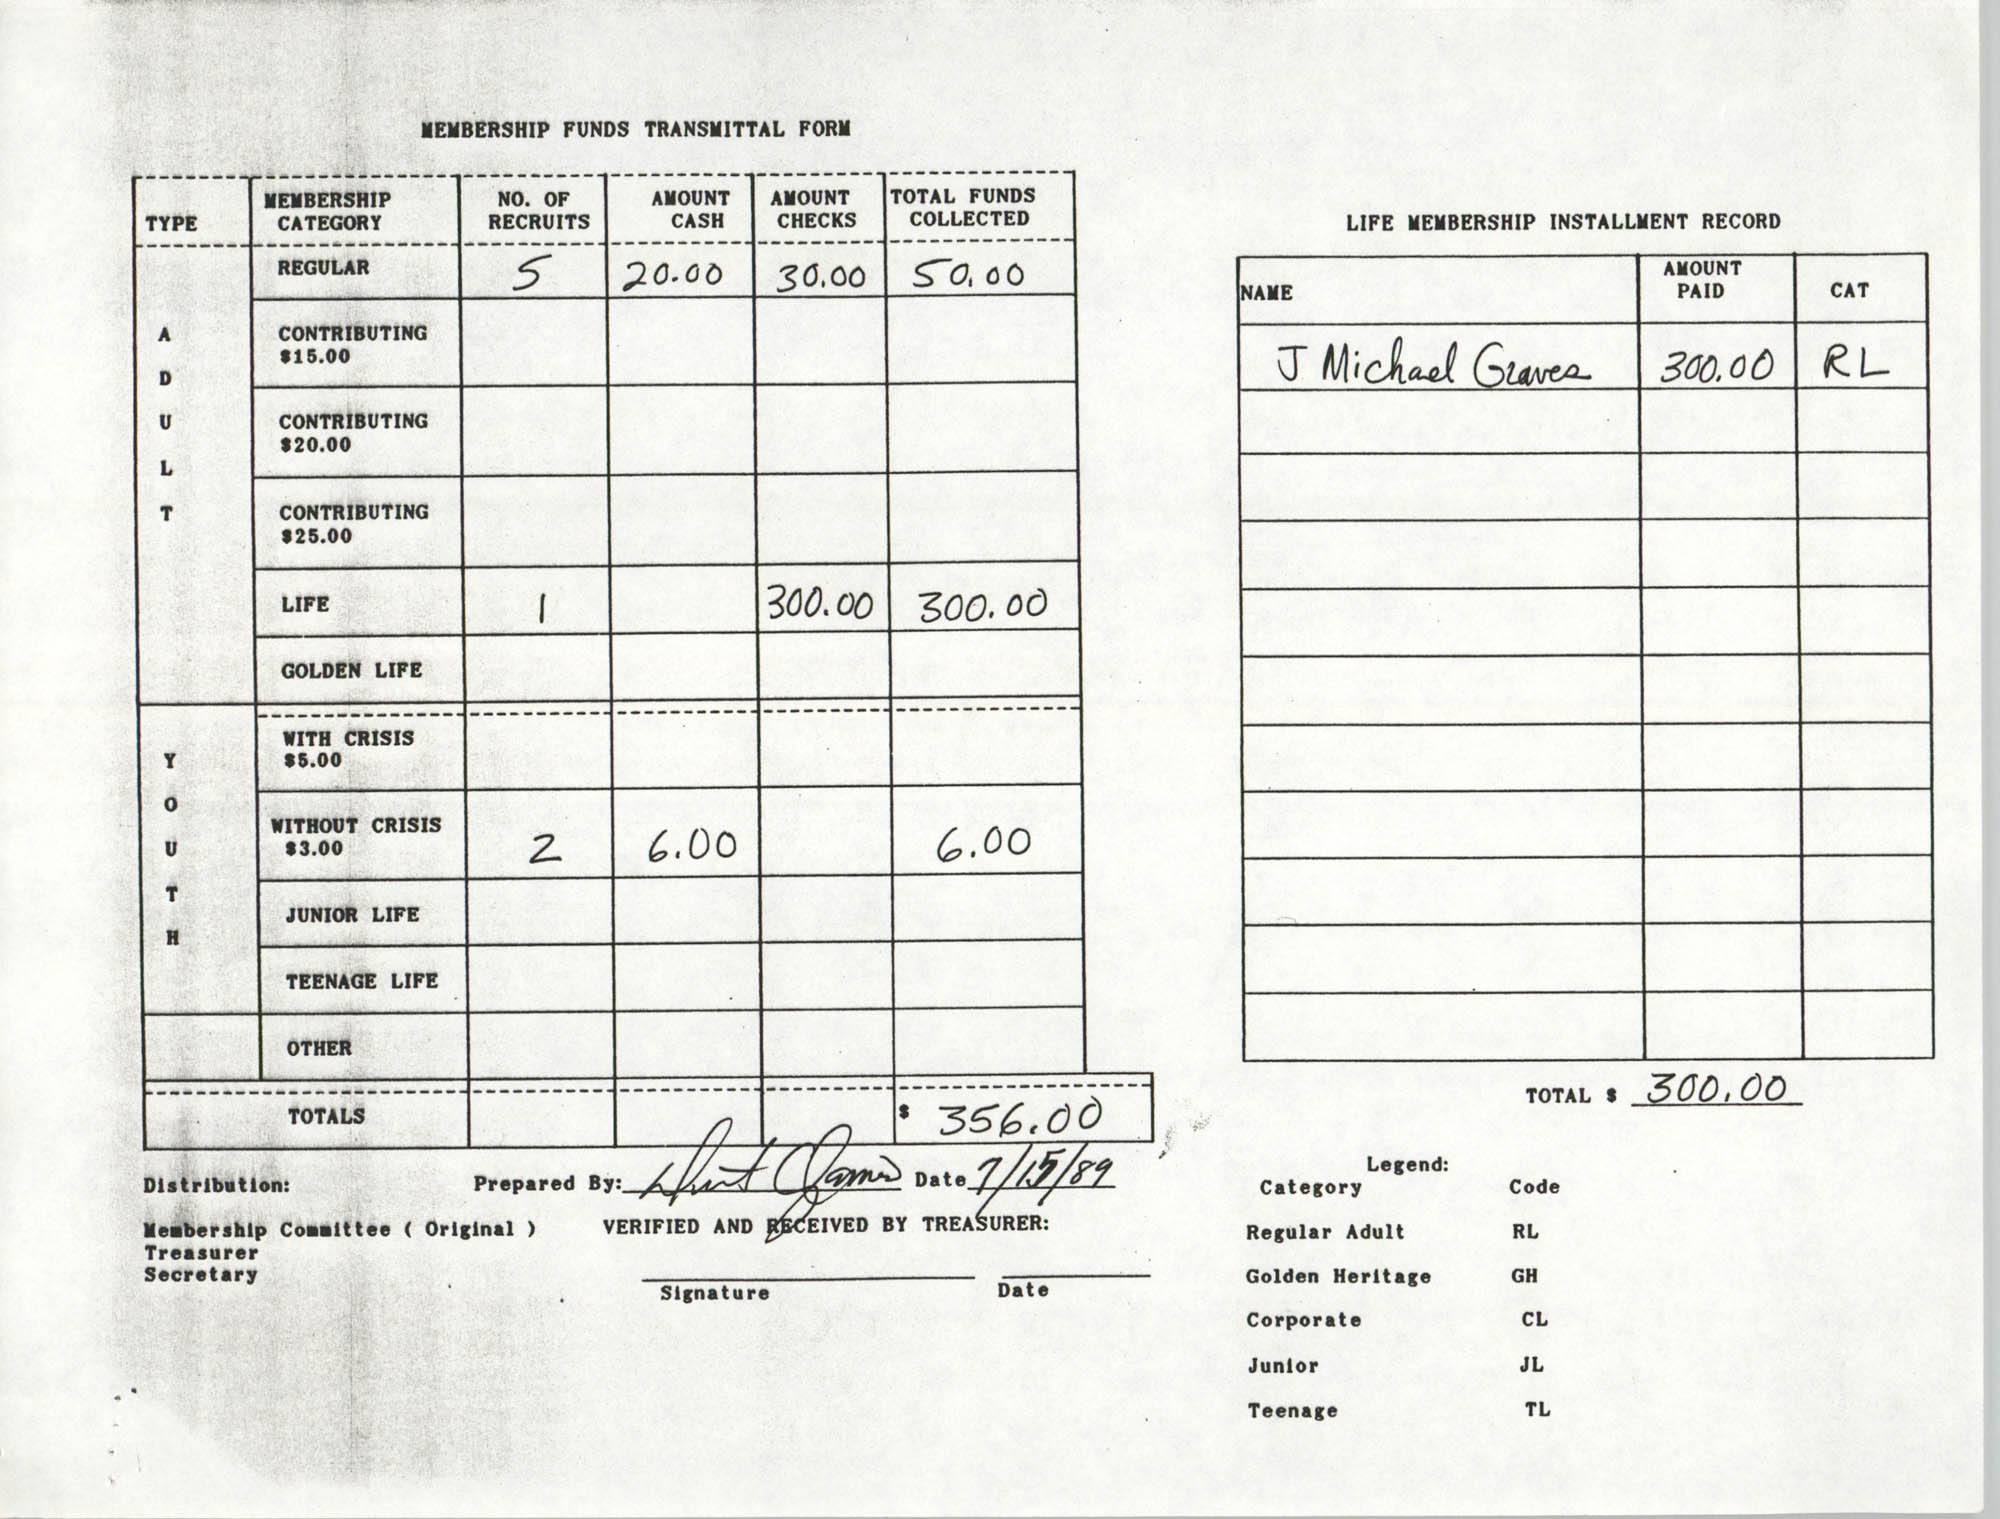 Charleston Branch of the NAACP Funds Transmittal Forms, July 1989, Page 3